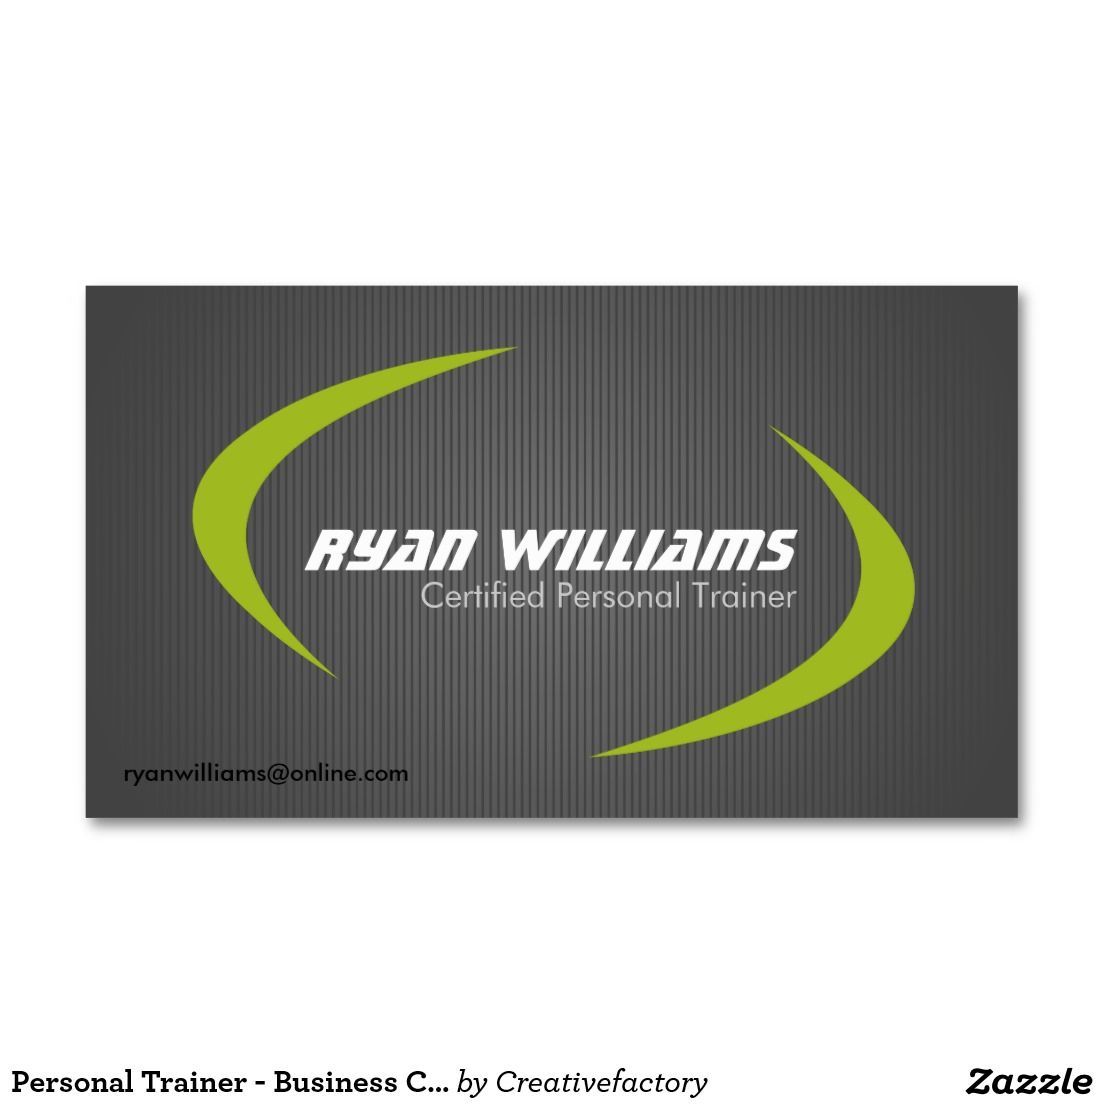 Personal Trainer - Business Cards   Personal trainer, Business cards ...